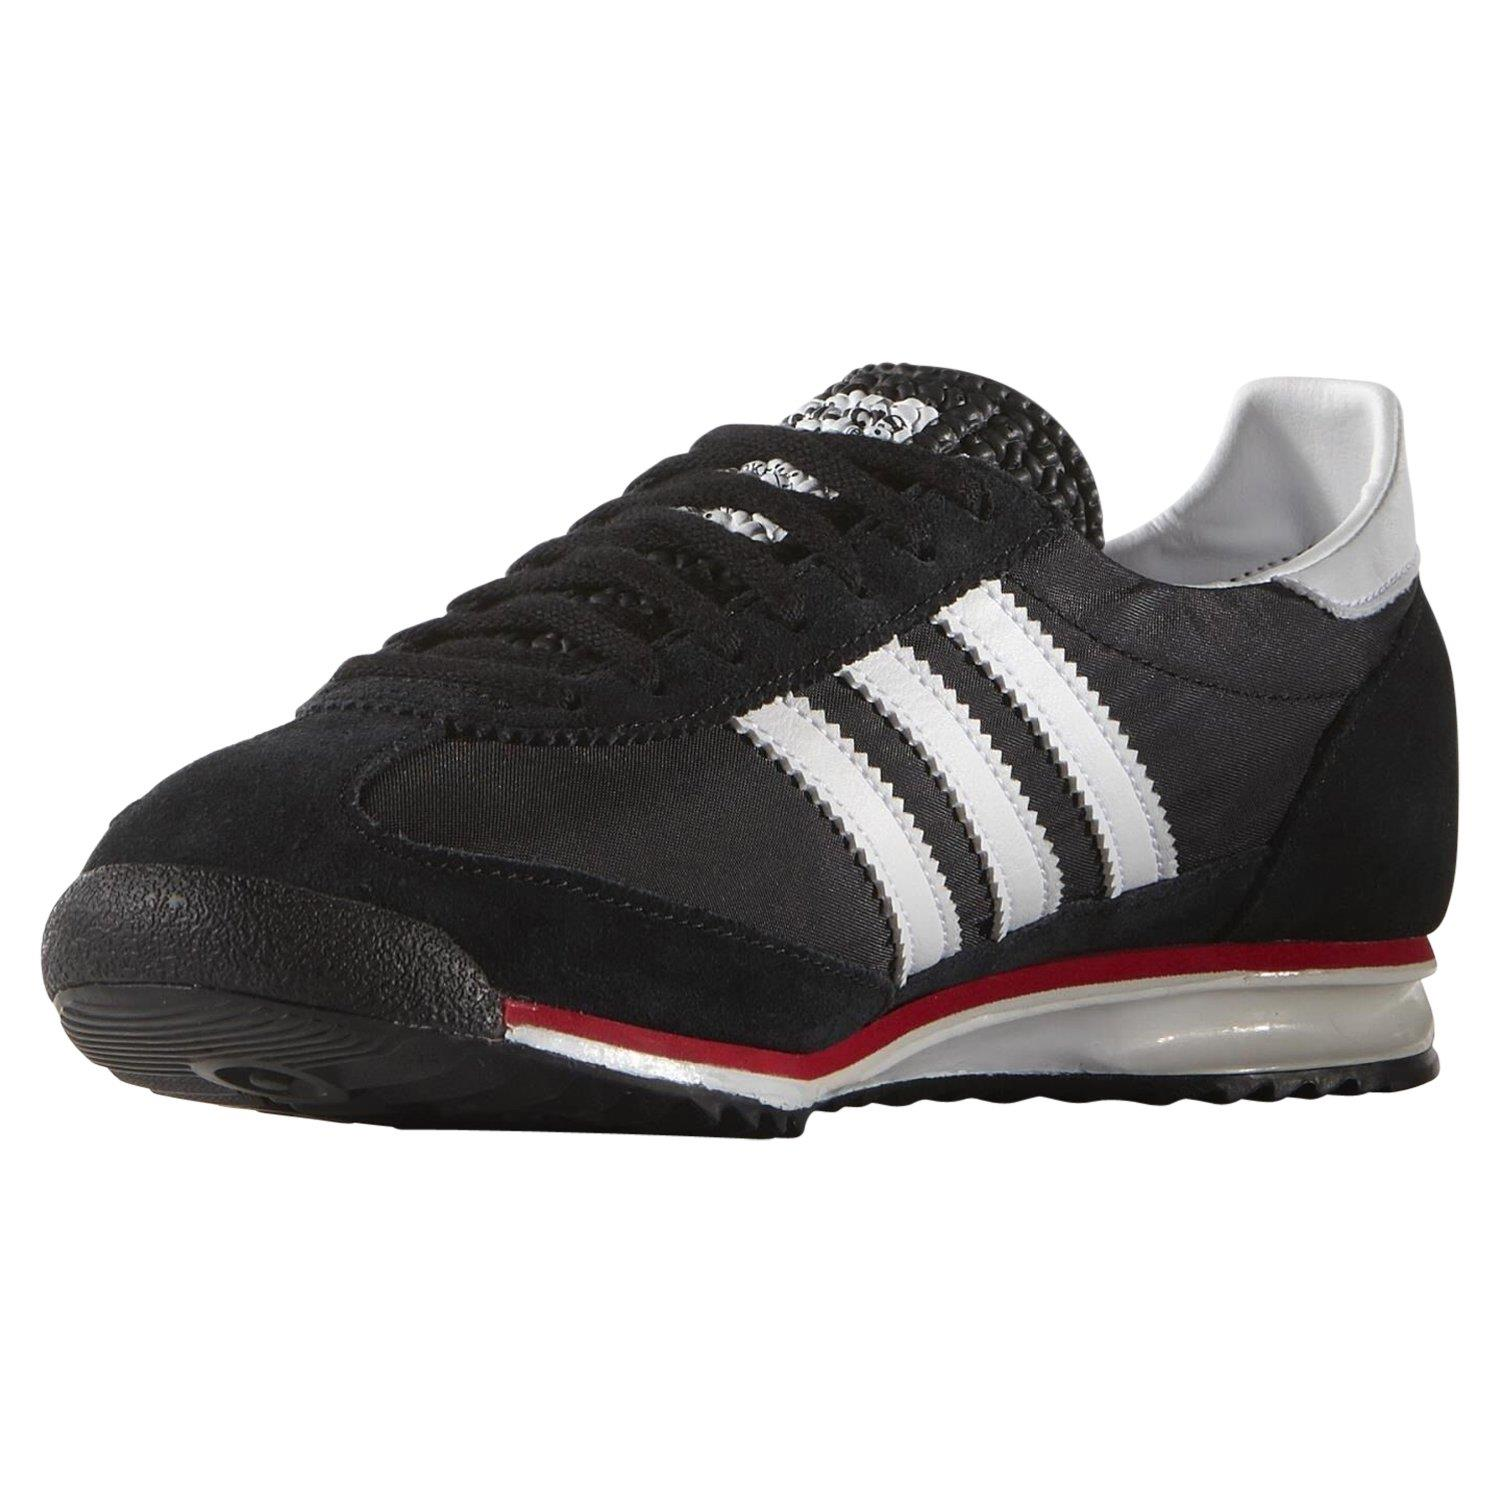 Adidas-Originals-SL72-Baskets-Homme-Trefoil-retro-vintage-Rare-Deadstock-Shoes miniature 4